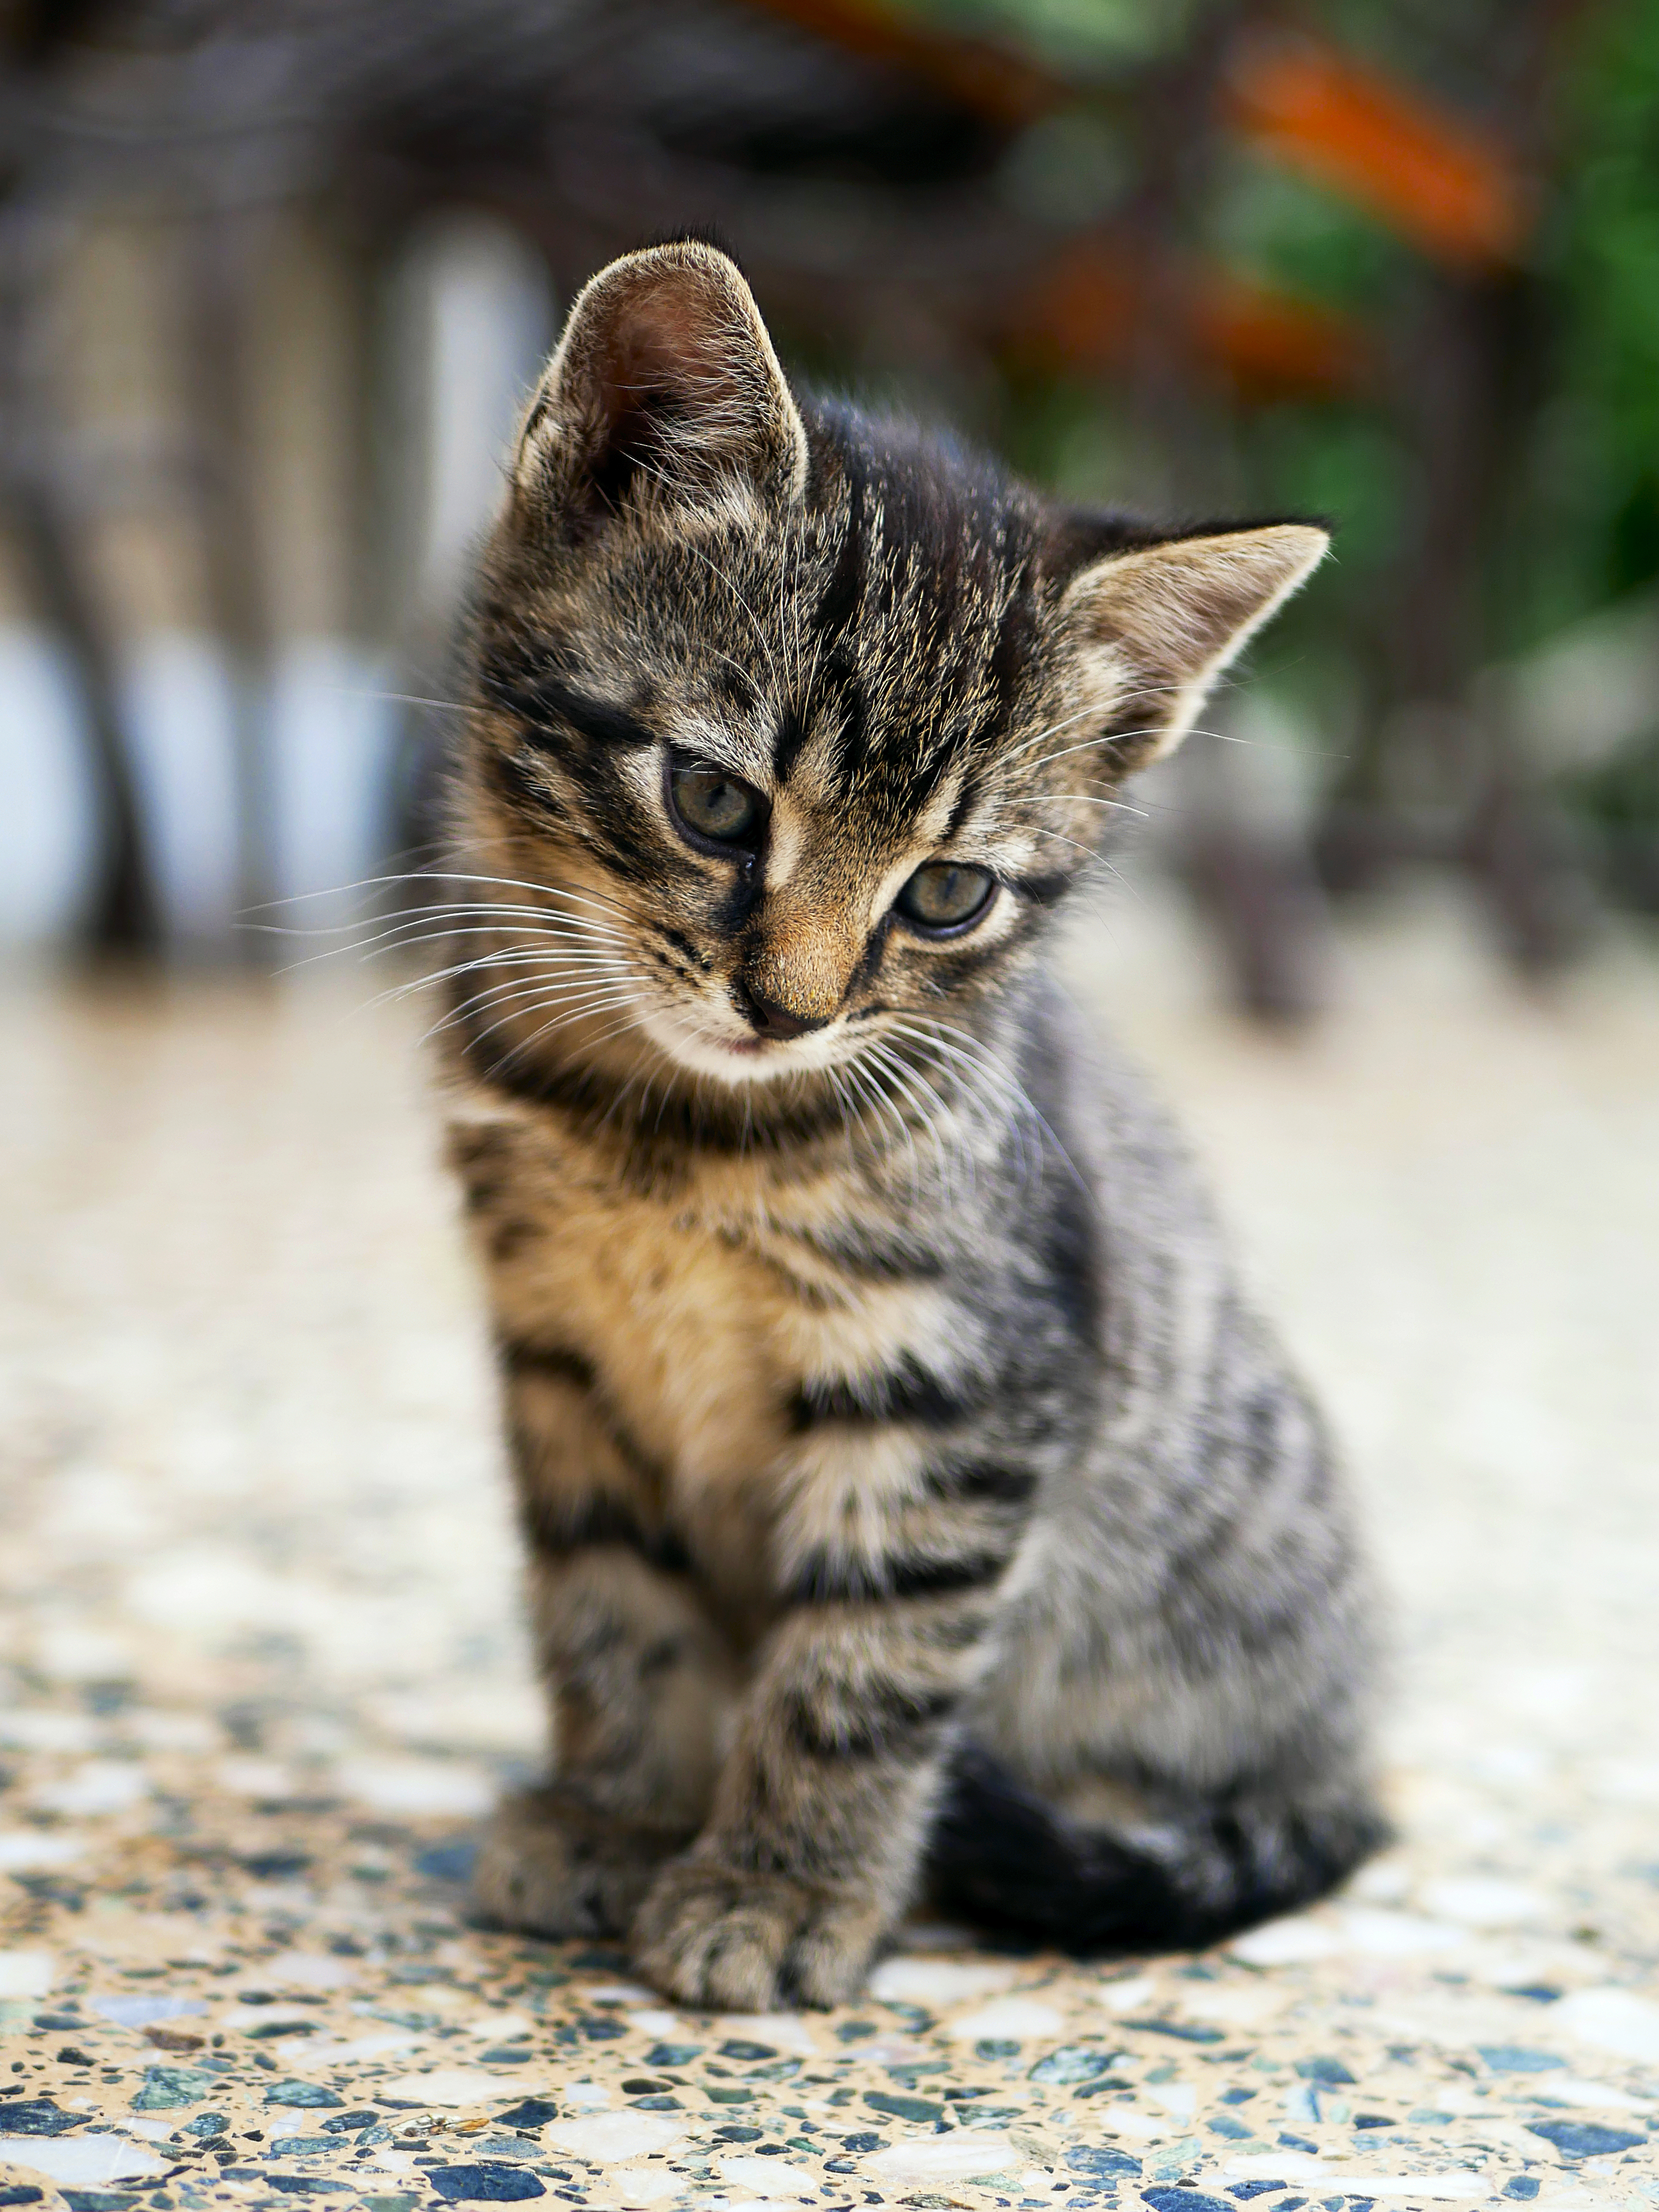 A Cute Puppy Wallpaper 100 Kitten Images Download Free Images On Unsplash